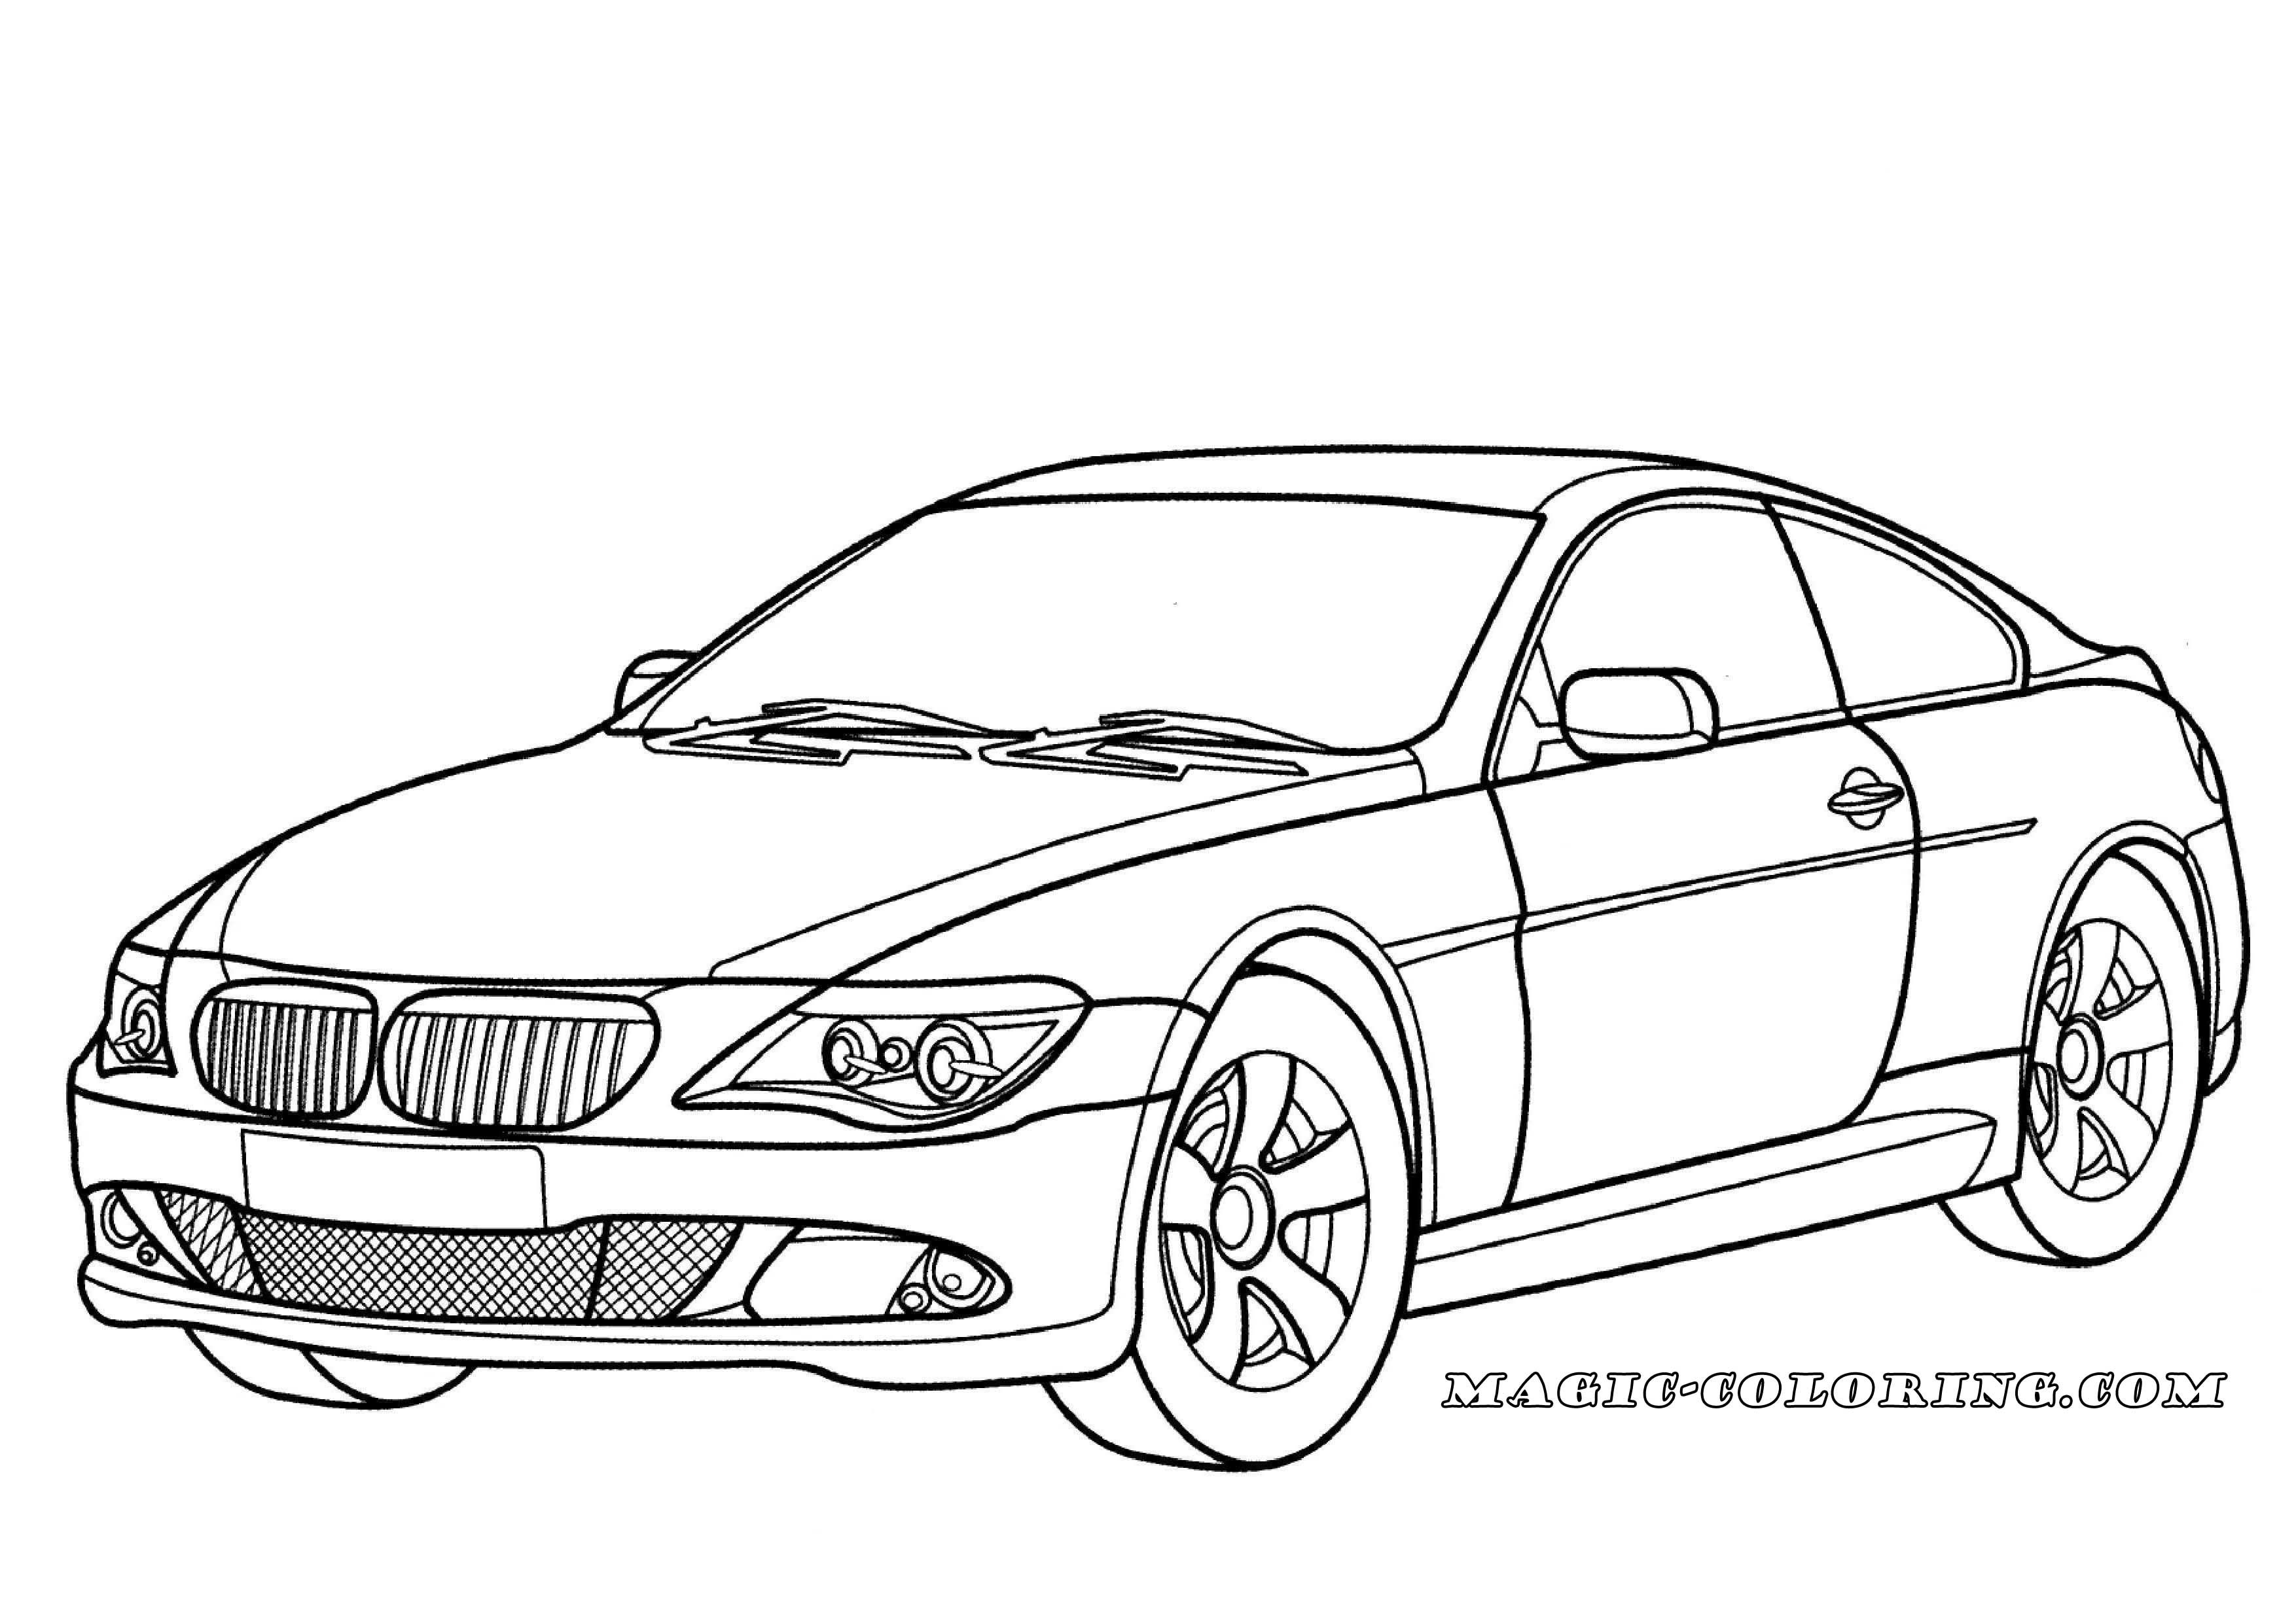 Transportation Coloring Pages Bmw Cars Coloring Pages Cars